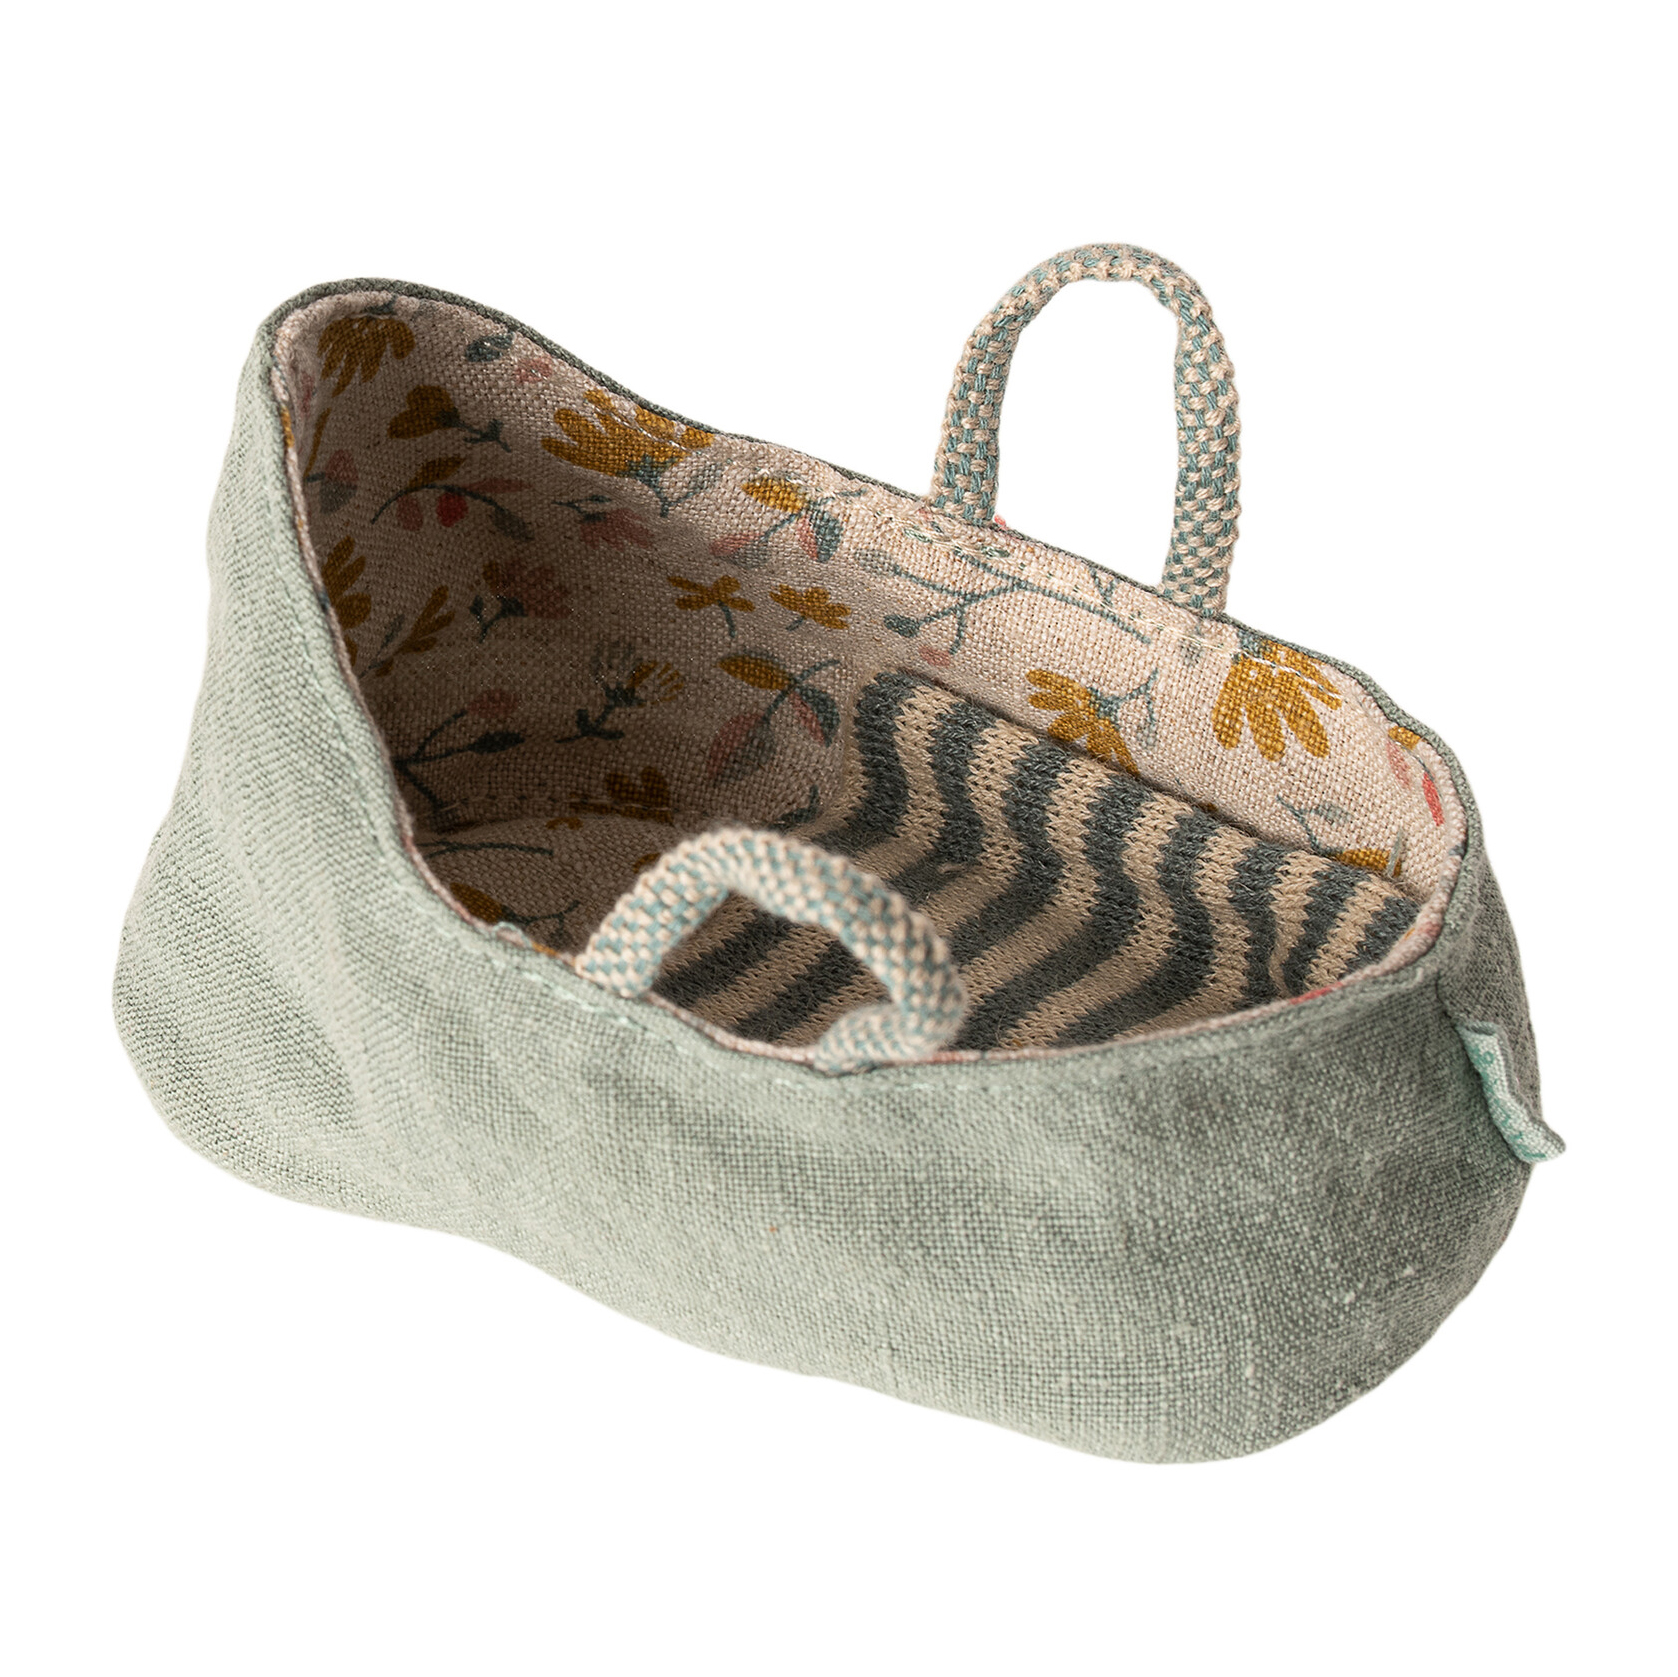 Baby-Tragetasche - Carrycot my dusty green - Maileg